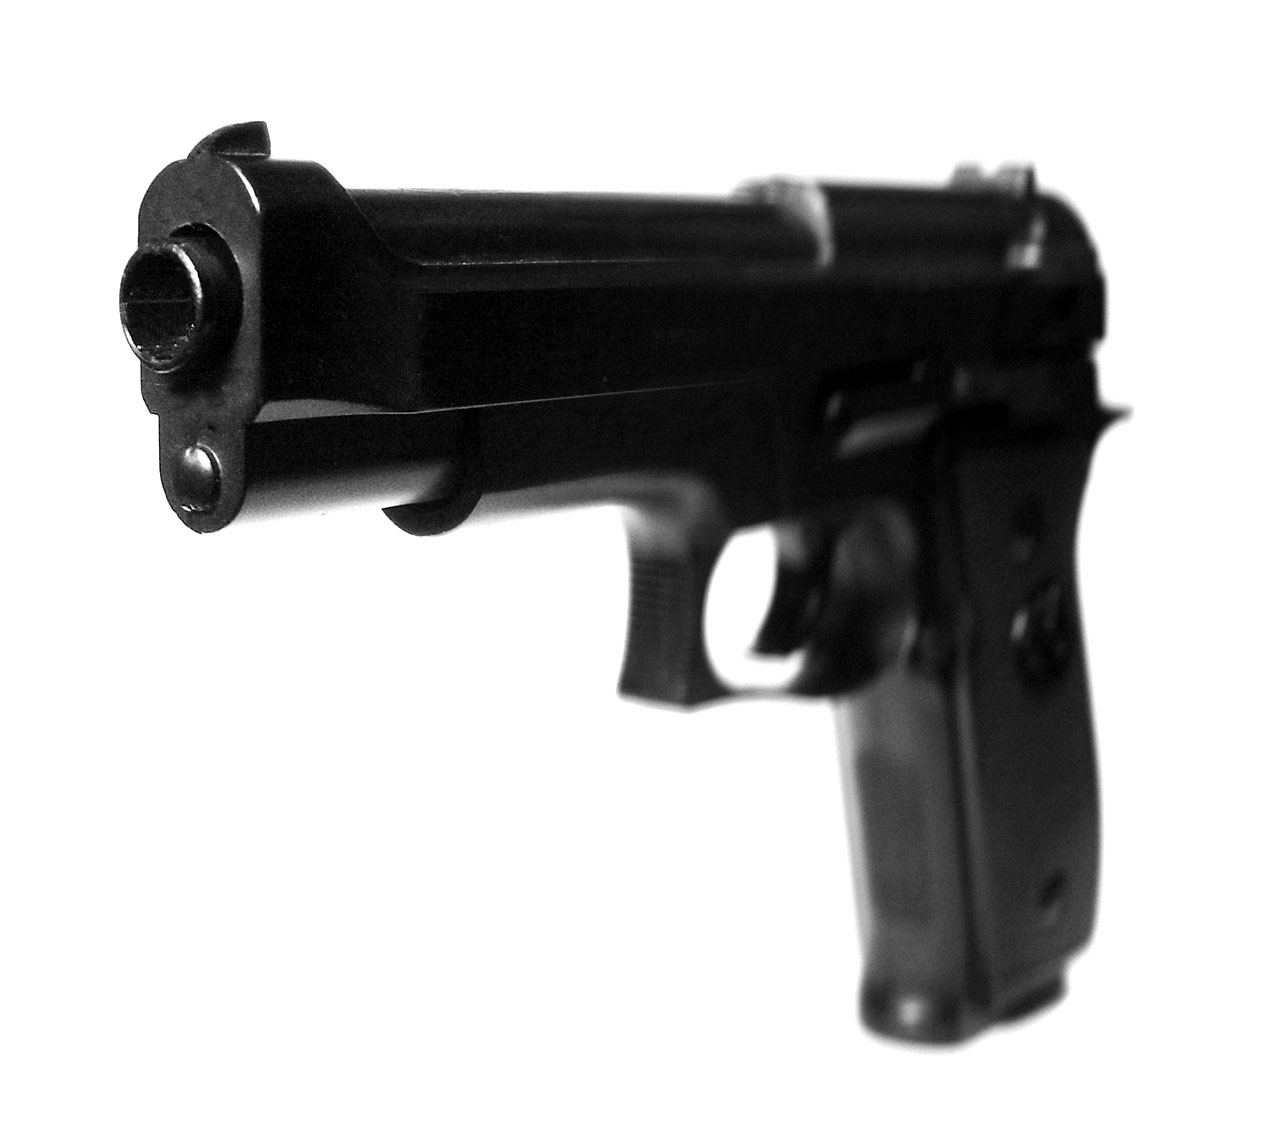 Public Domain picture acquired here: http://www.publicdomainpictures.net/view-image.php?image=1881&picture=pistol